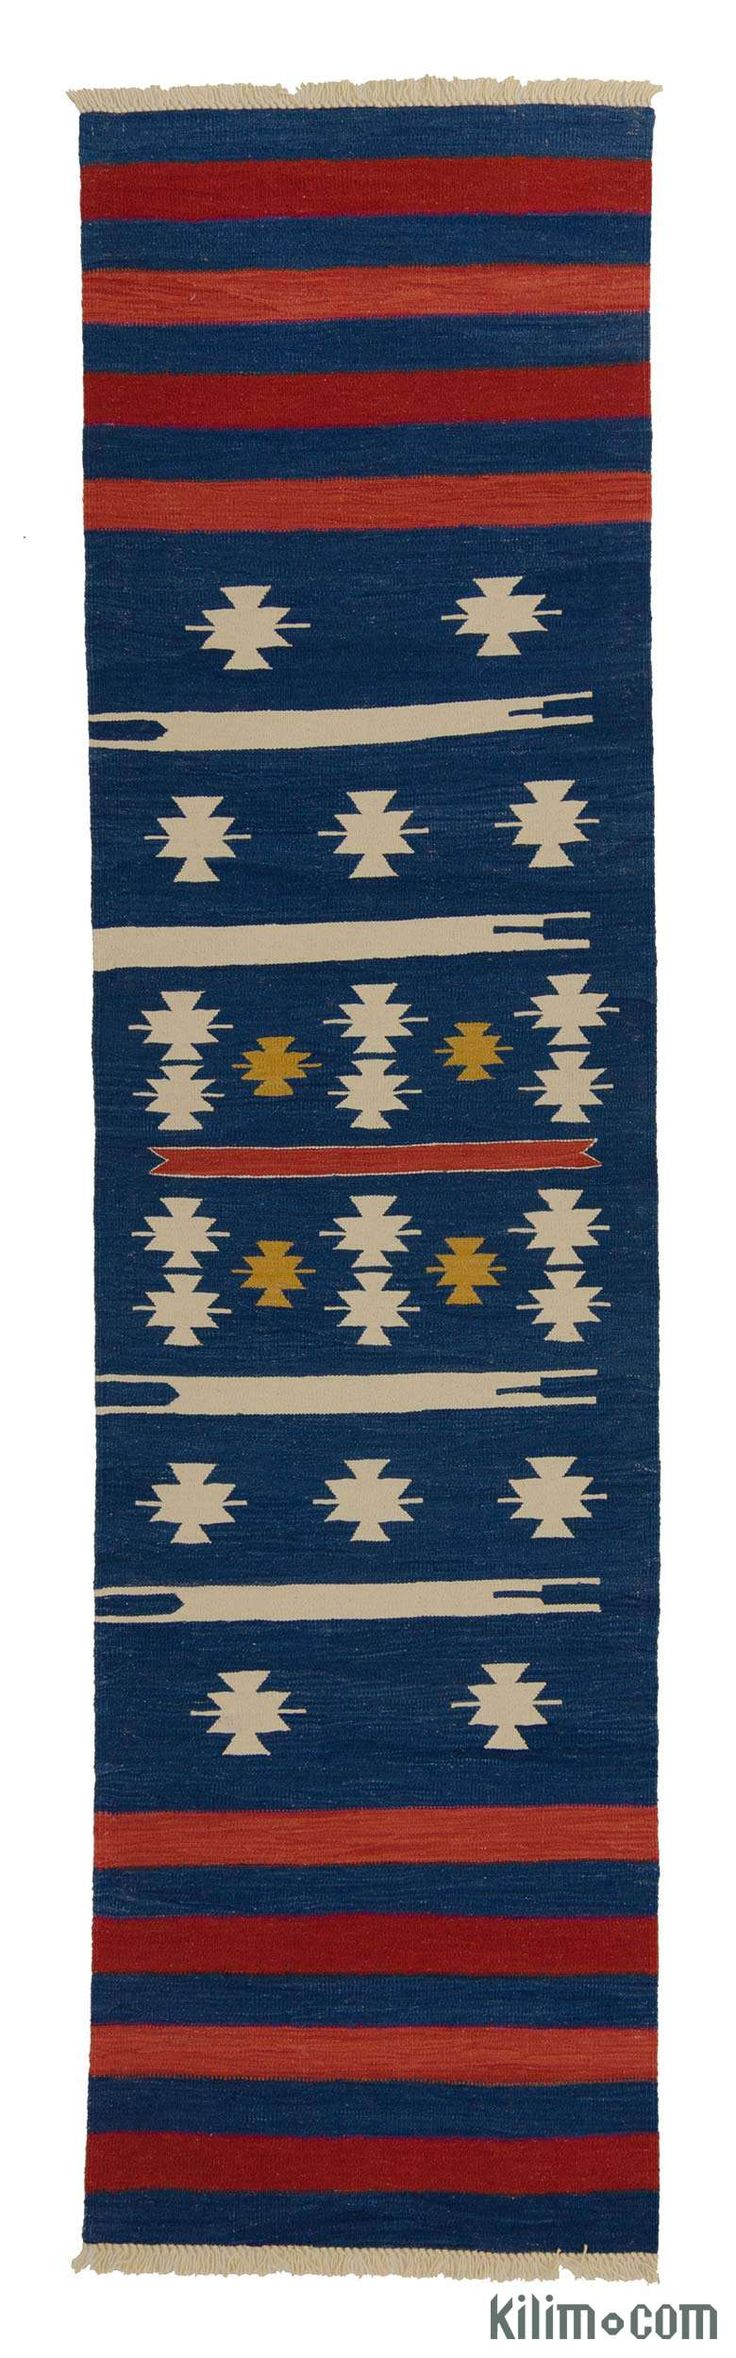 New Turkish kilim runner rug hand-woven with vegetable-dyed and hand-spun wool.